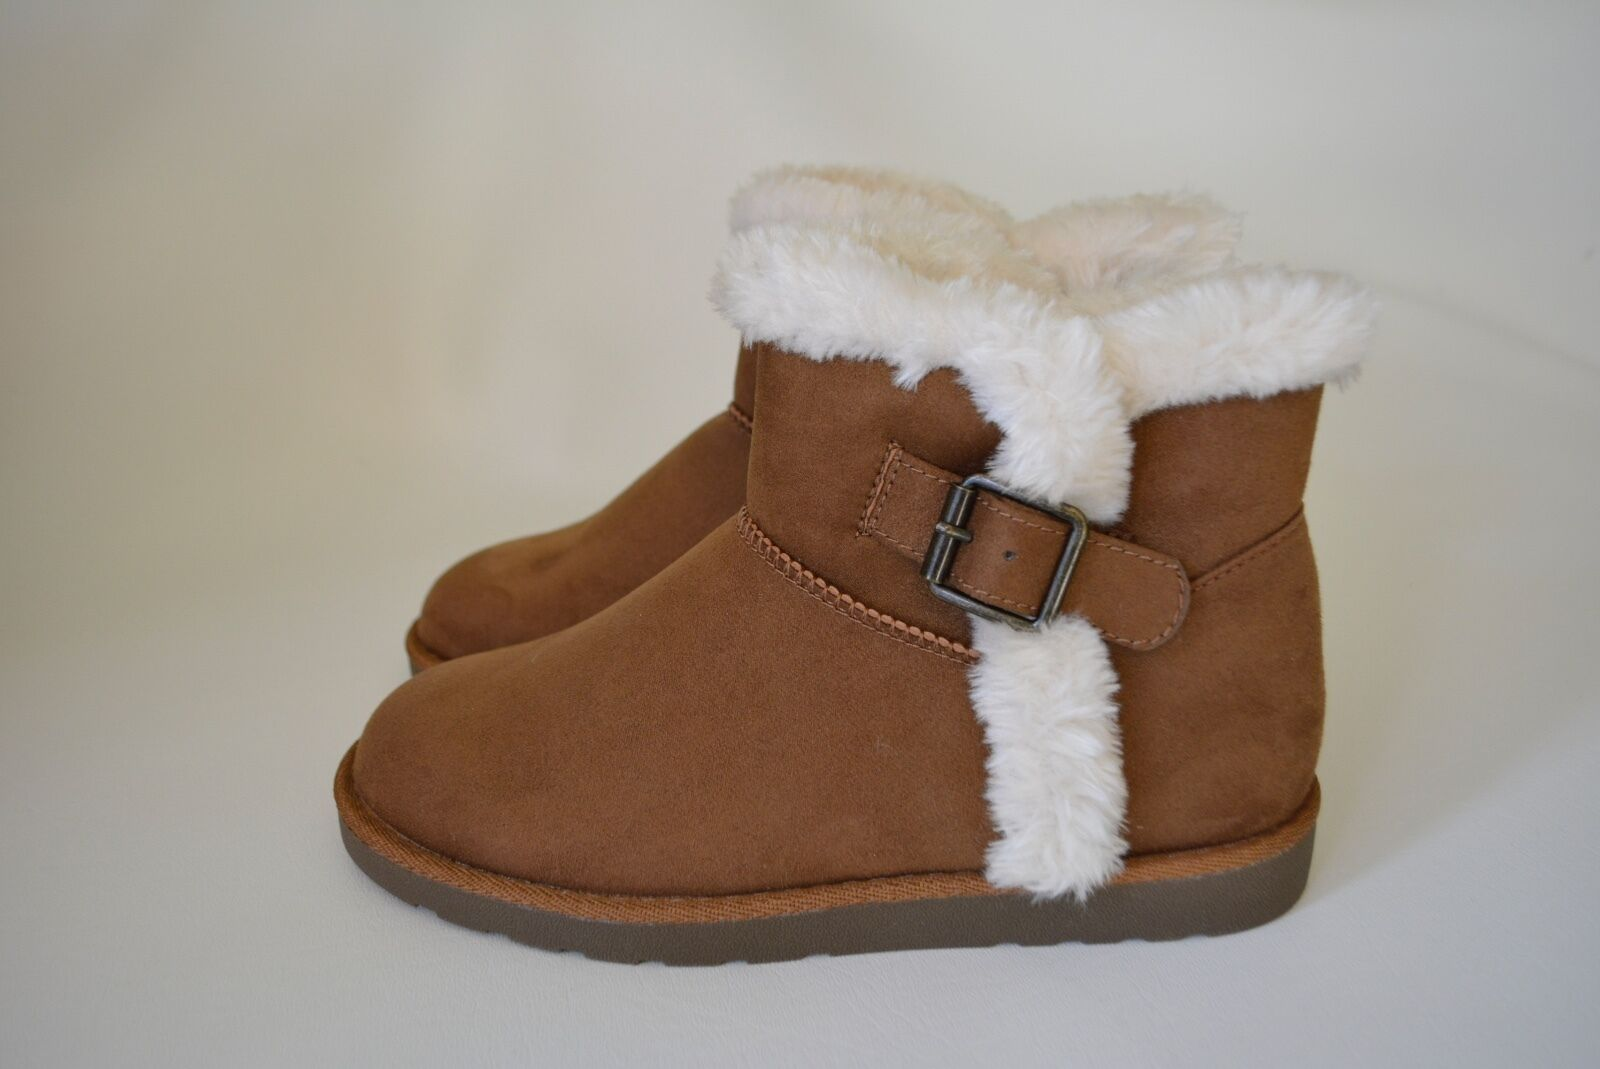 New SO Authentic American Heritage Women's Size 6 Chestnut Fur Trim Ankle Boots